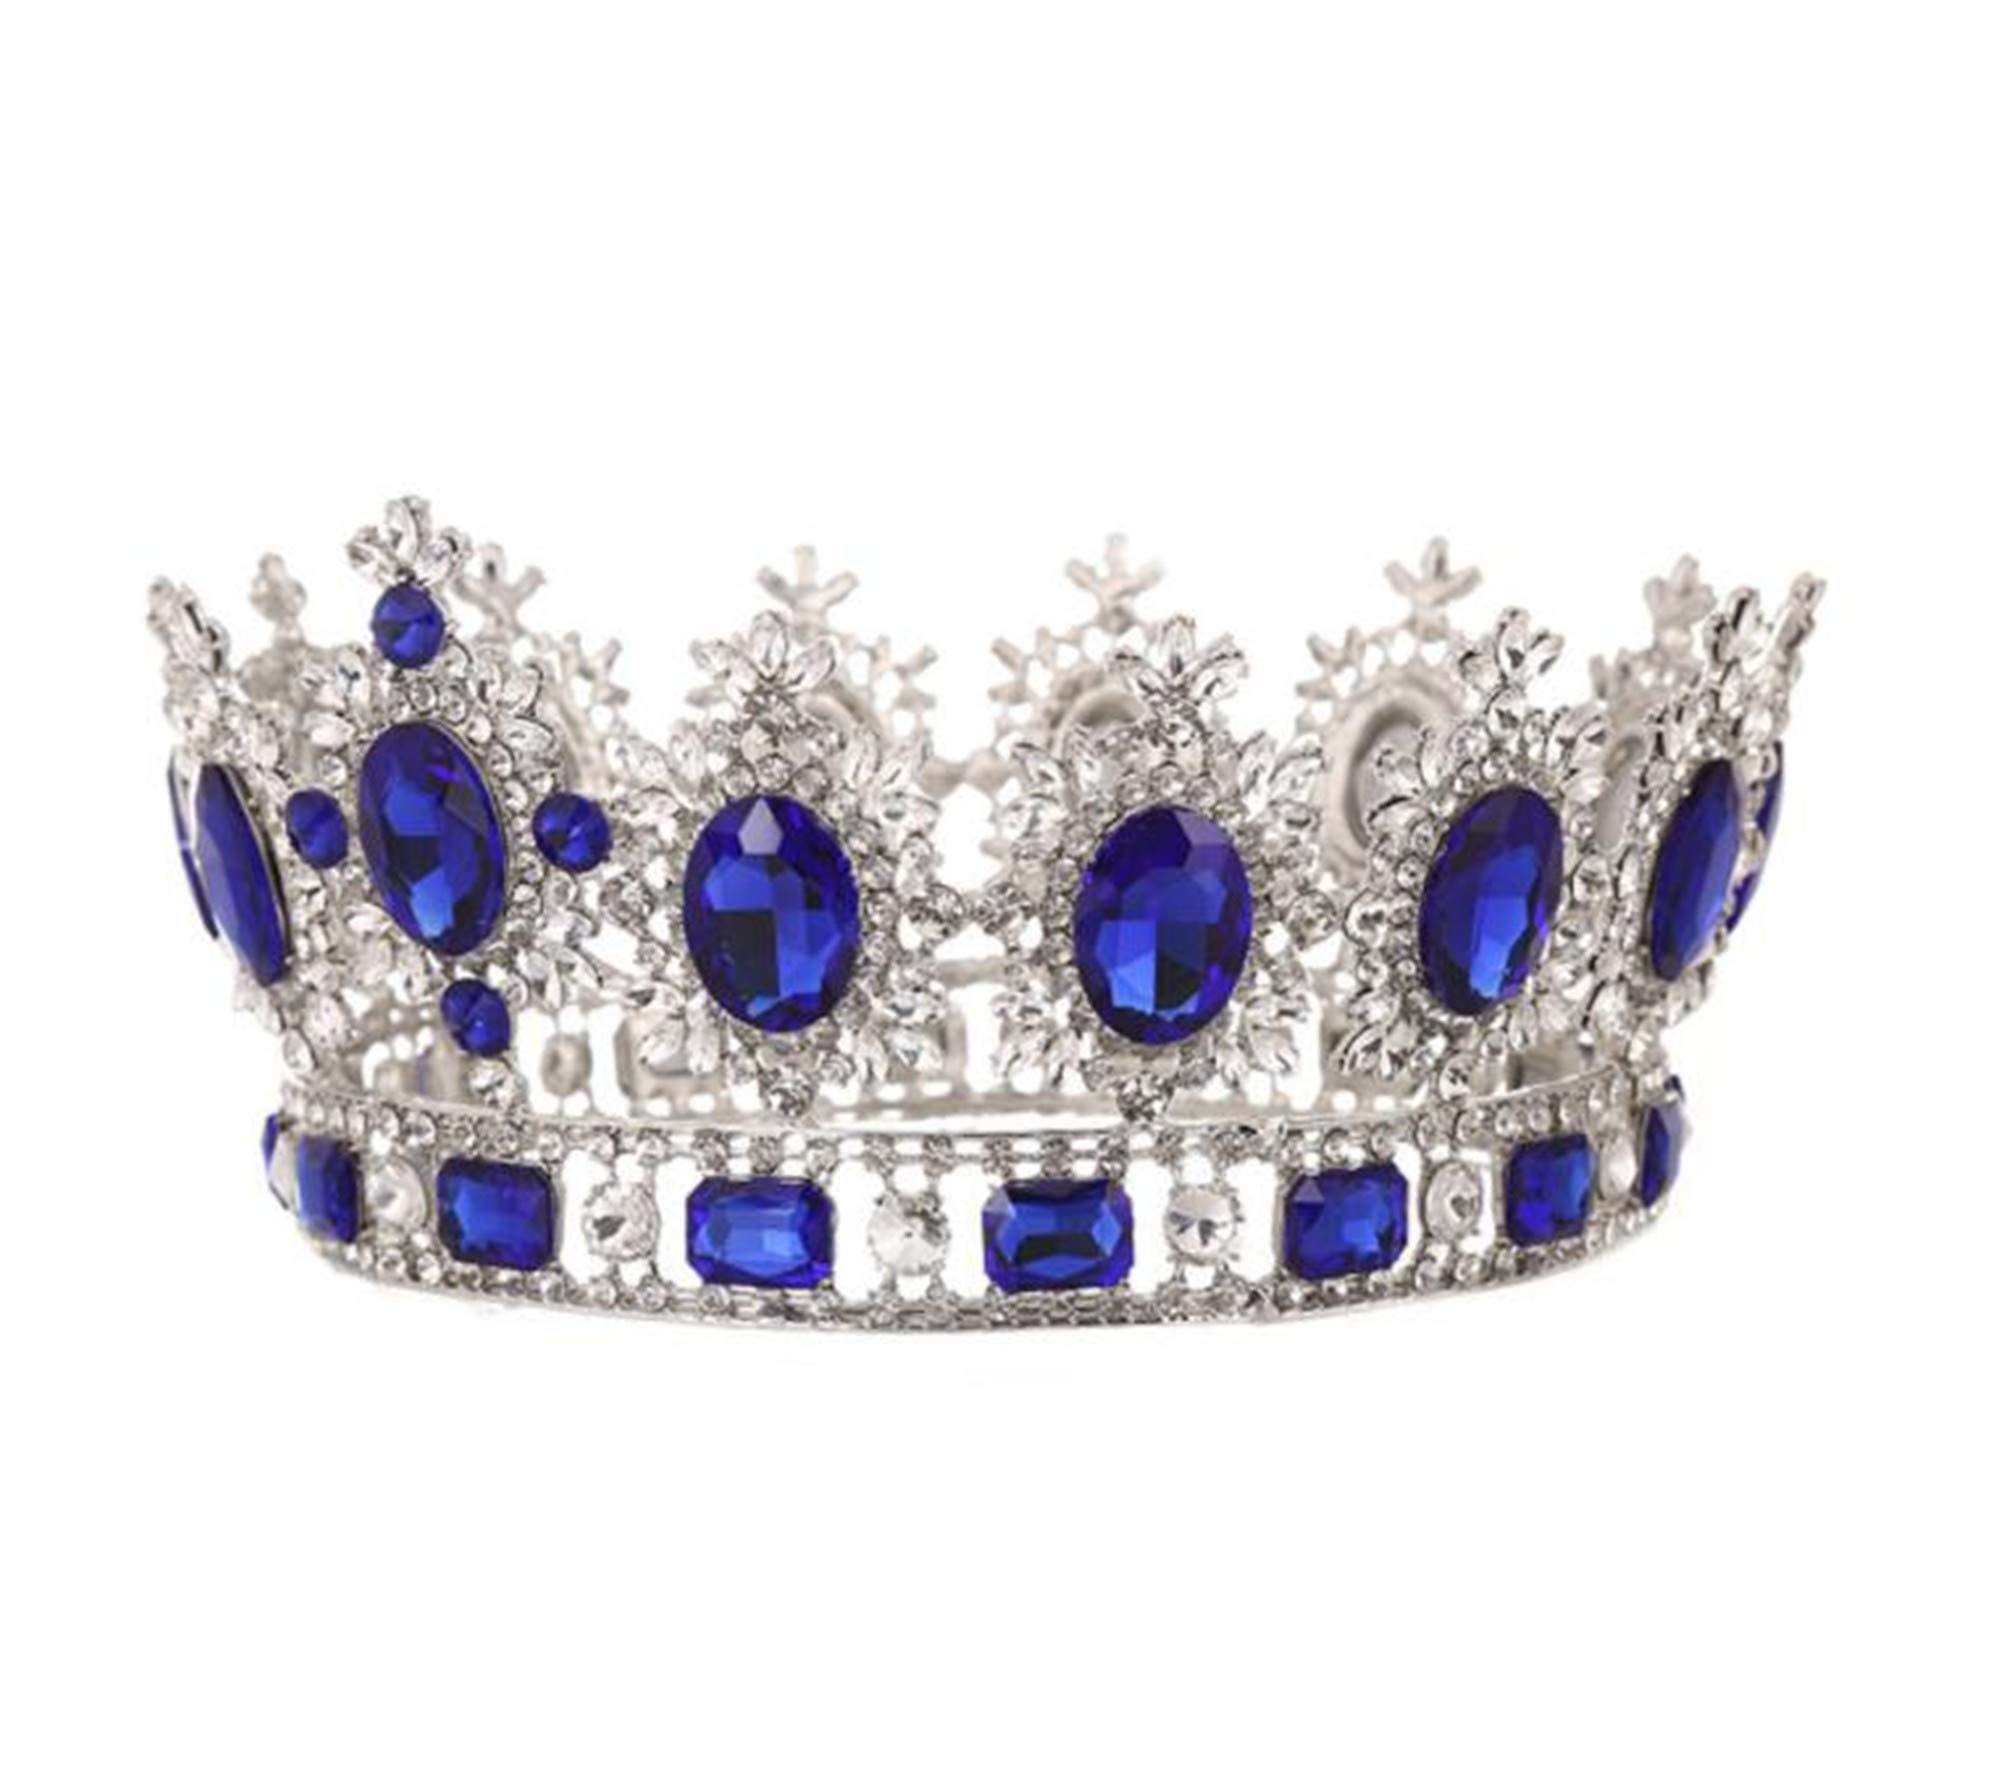 WIIPU Large Gemstone Crystal King Crown Wedding Prom Party Pageant,6.7'' Diameter(A1365) (Blue)